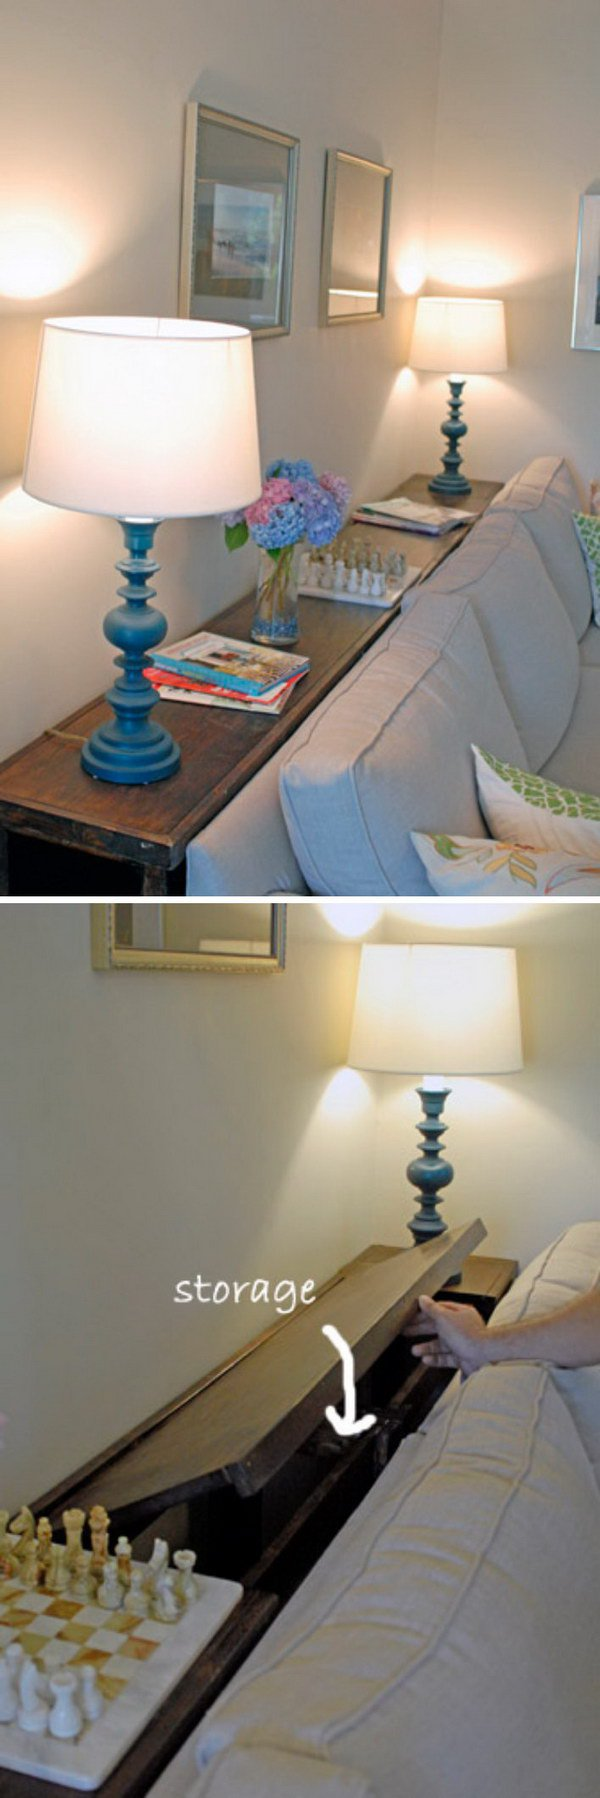 DIY Console Table with Storage Behind Your Couch.